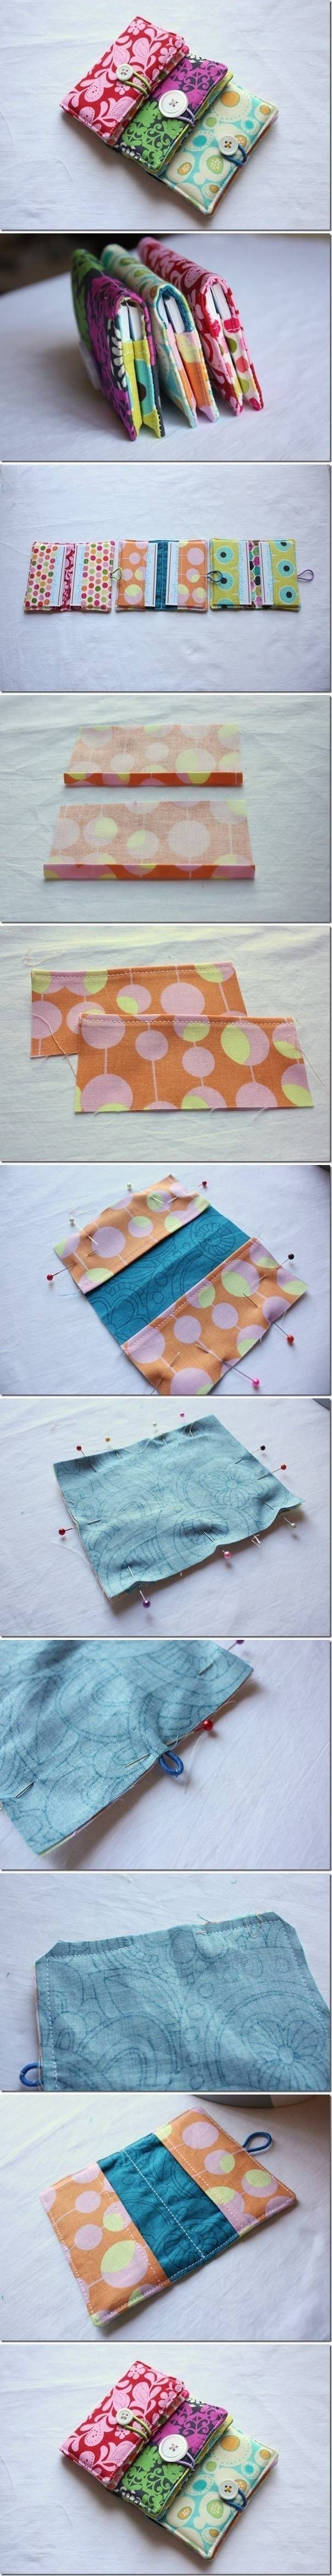 DIY Sew Business Card Holder Pictures, Photos, and Images for Facebook, Tumblr, Pinterest, and Twitter #handbagdiy